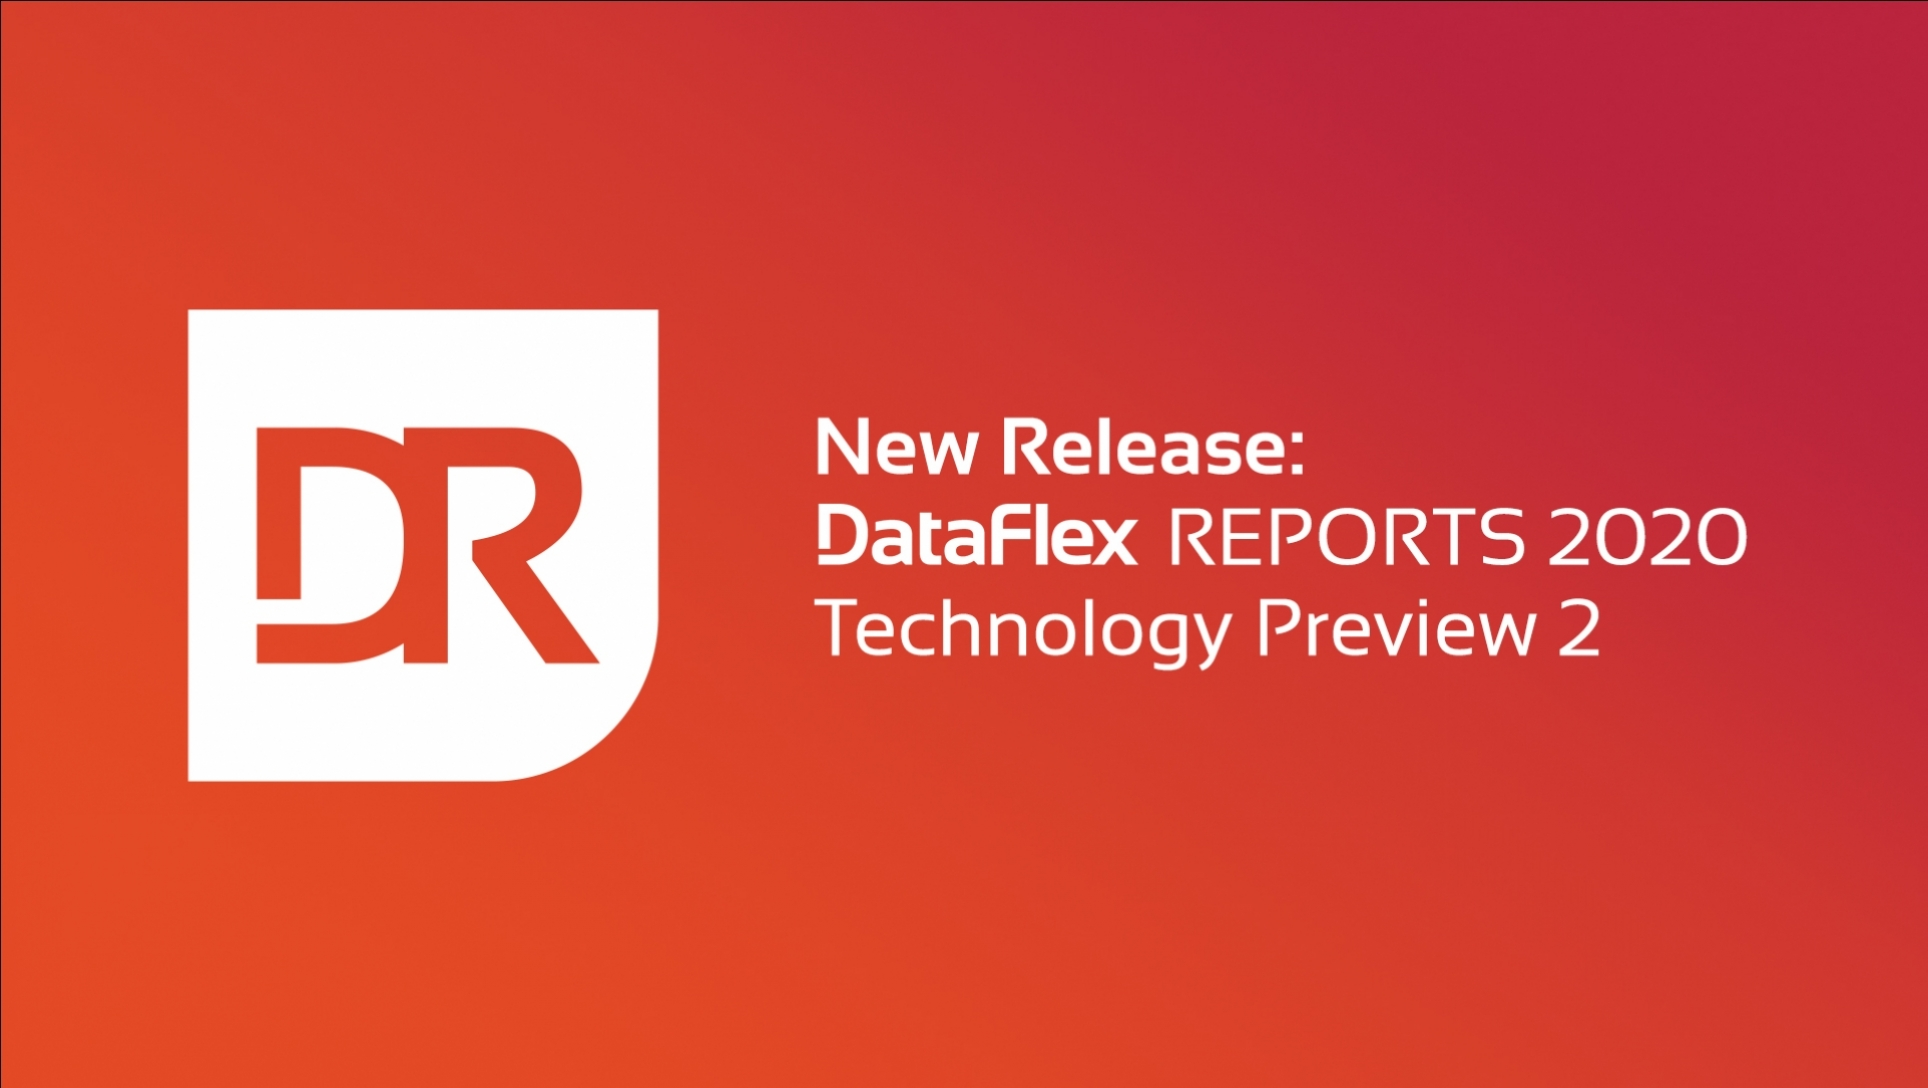 Technology Preview 2 of DataFlex Reports 2020